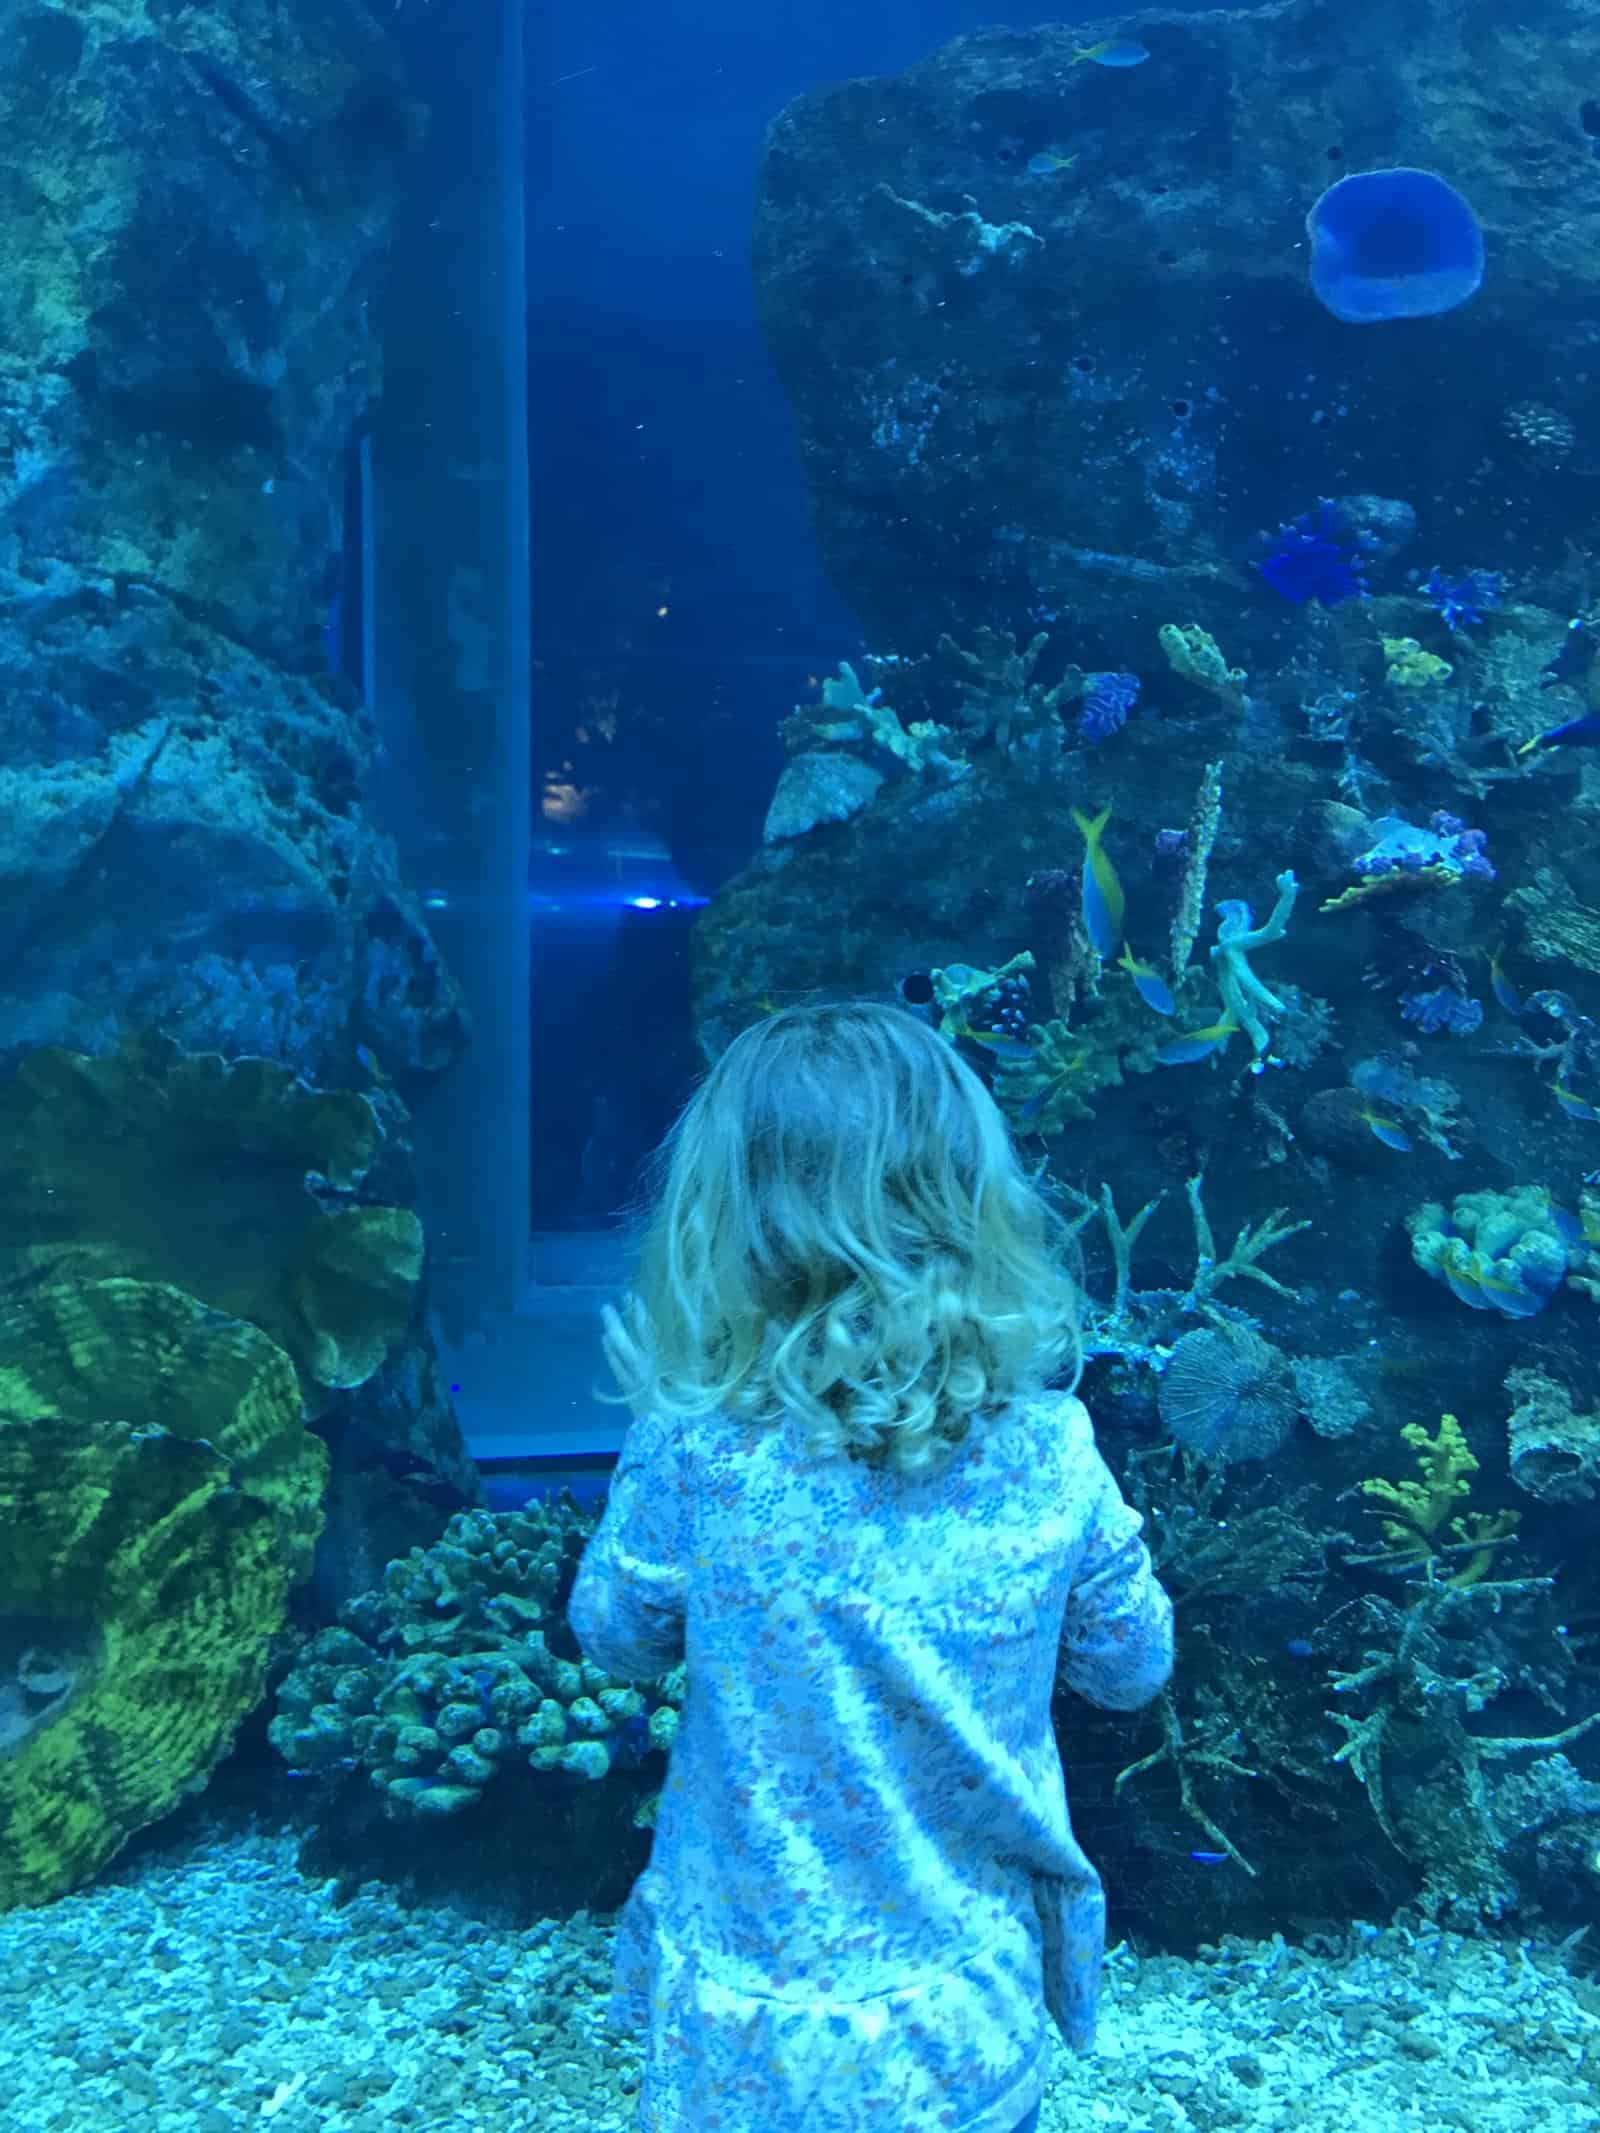 Visiting Dubai with a toddler - the Aquarium should be on your Dubai Bucket List